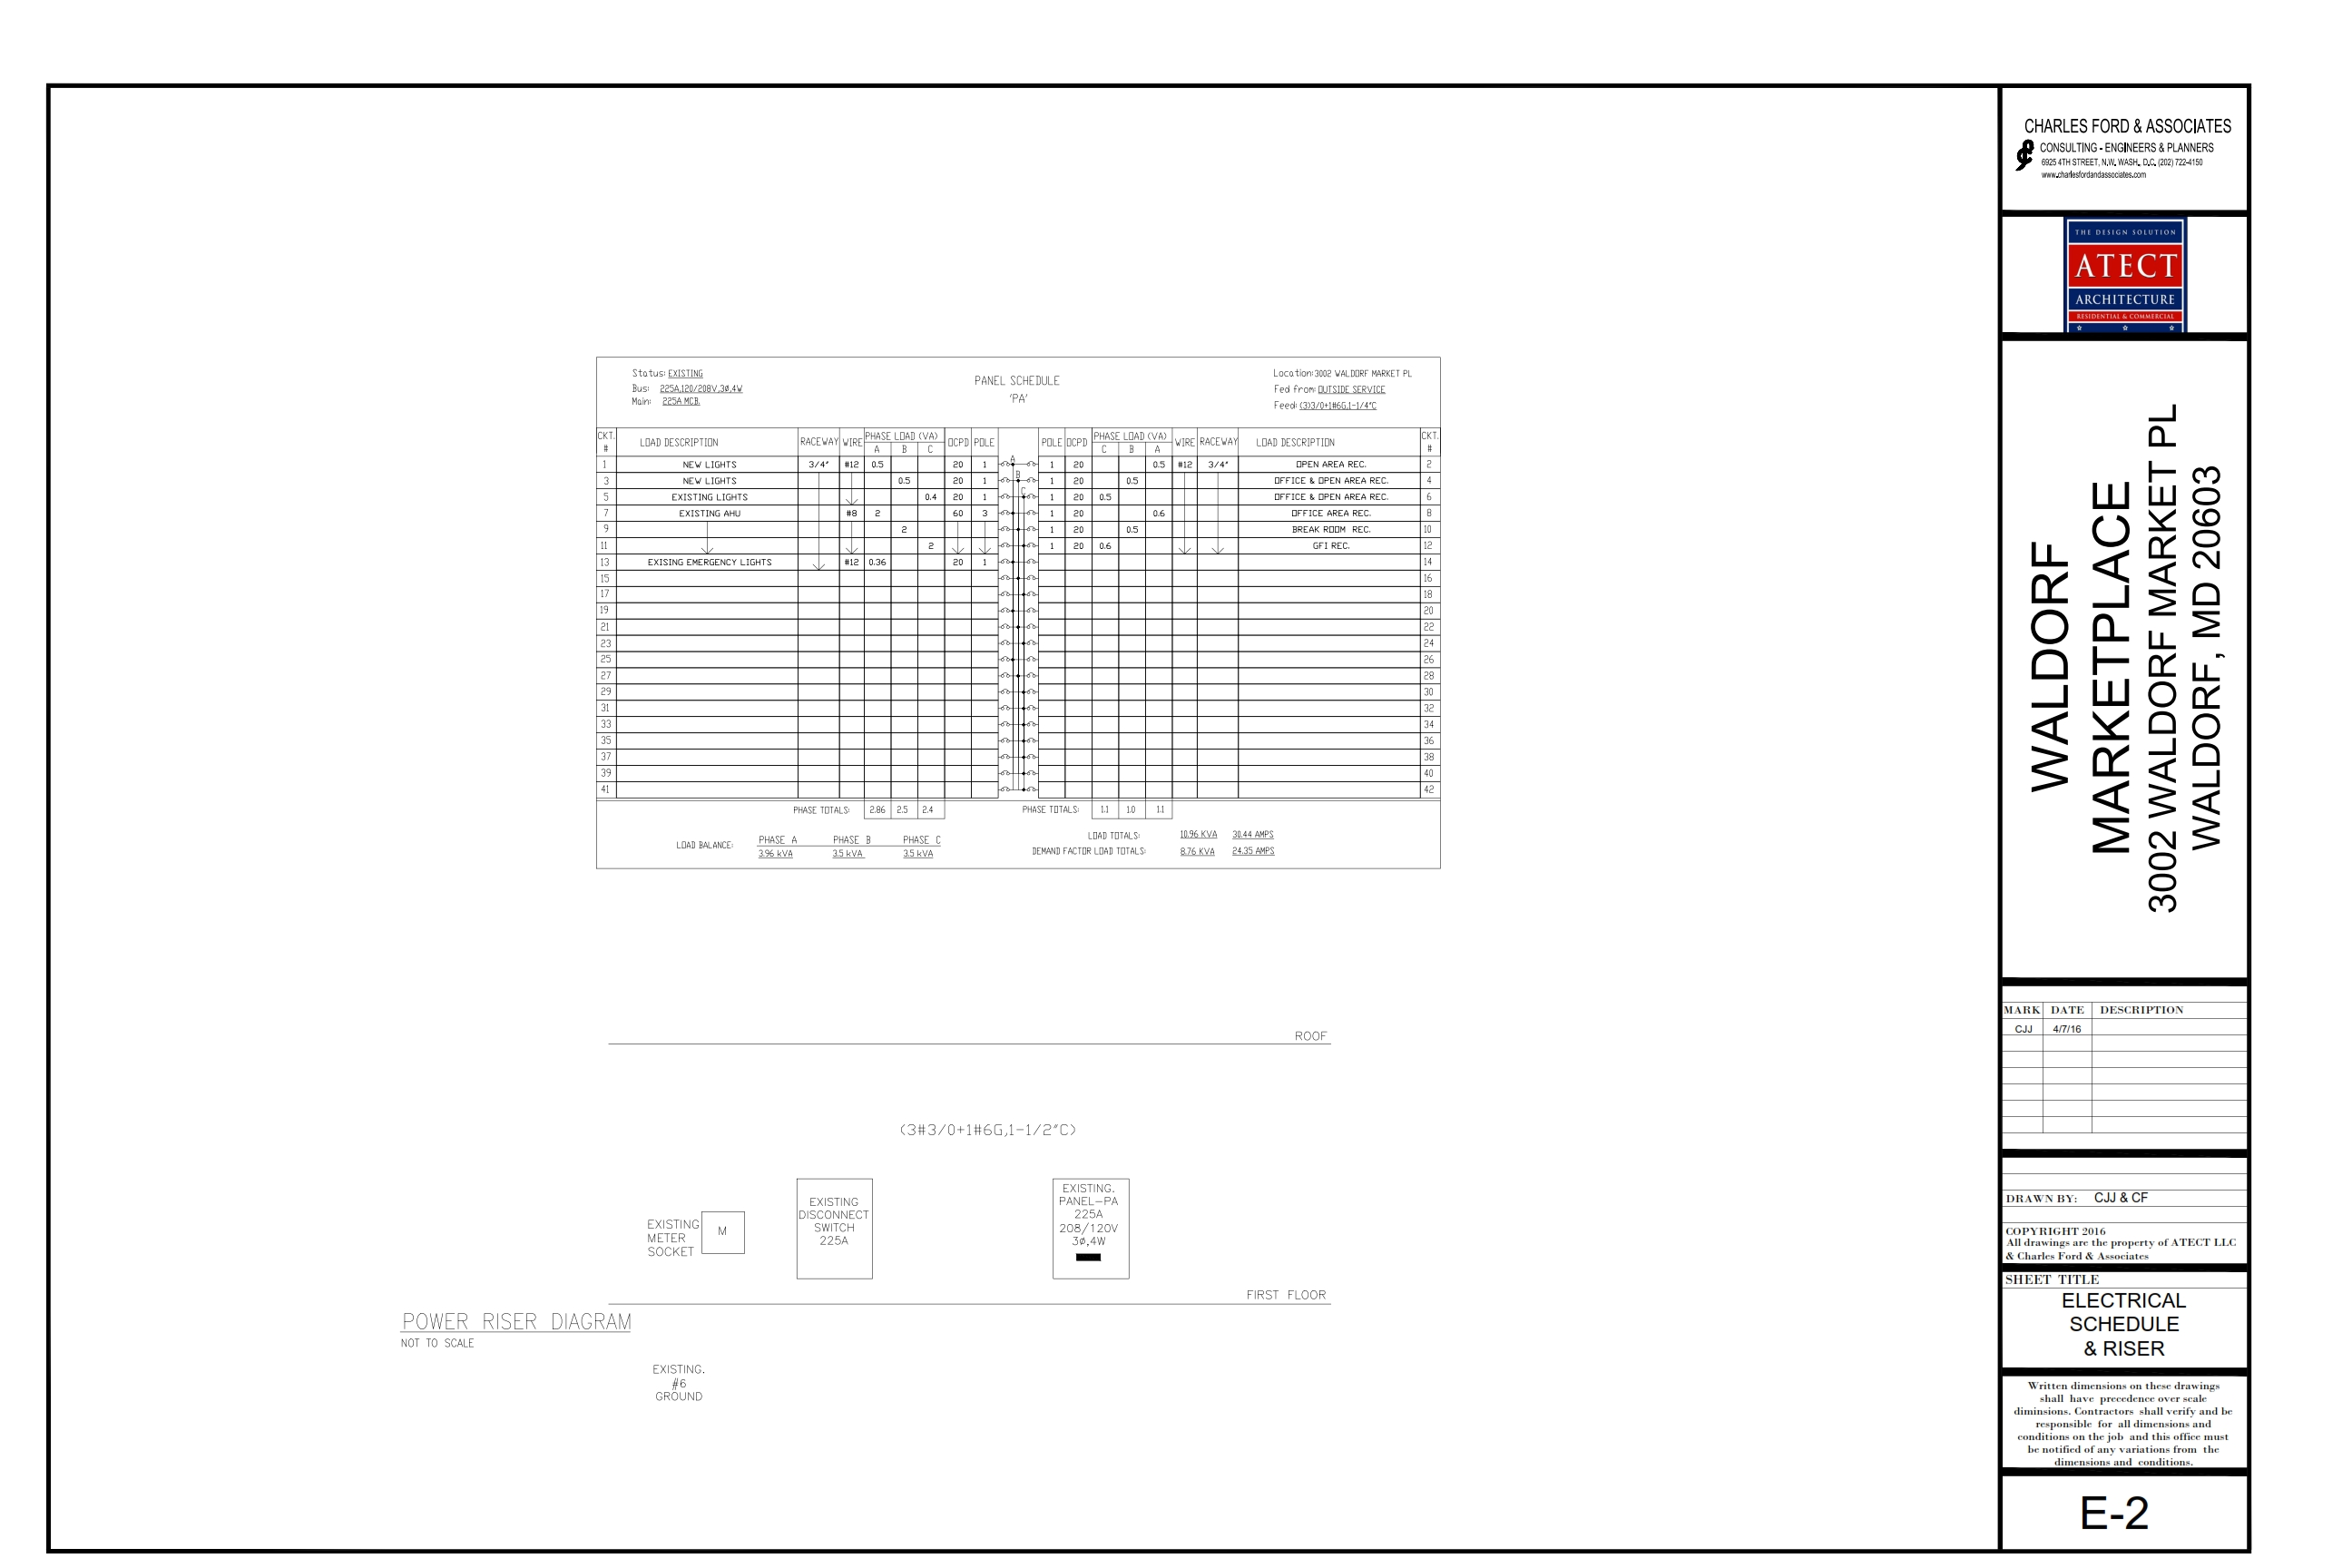 Waldorf Construction Documents_007.jpg